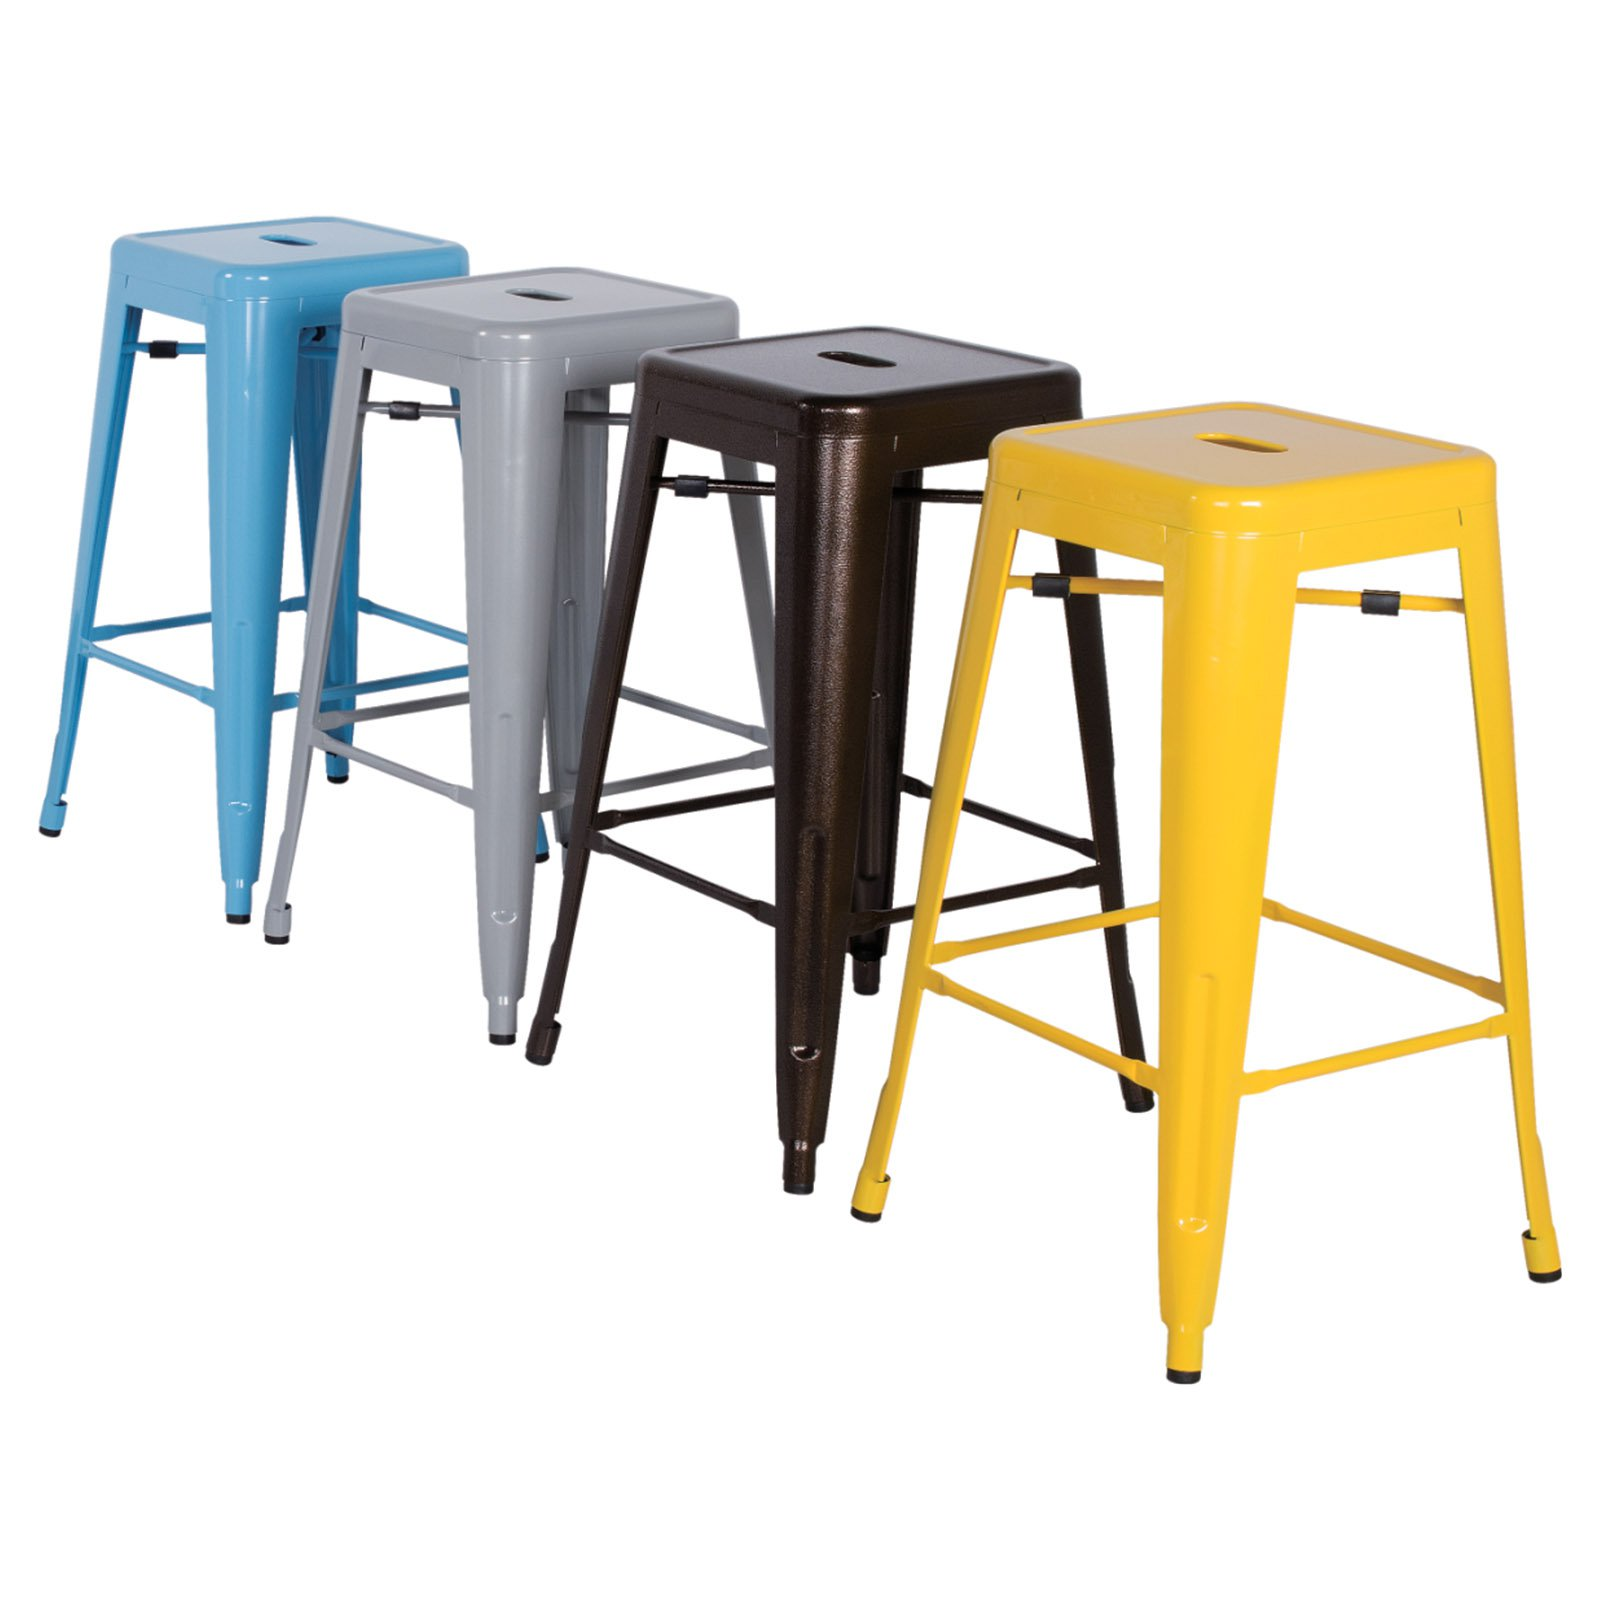 furniture tractor seat bar stools and used bar stools for sale with 4 colored plus plastic material stools west elm bar stools tractor seat bar stool seat bar stools acrylic bar stoolsg